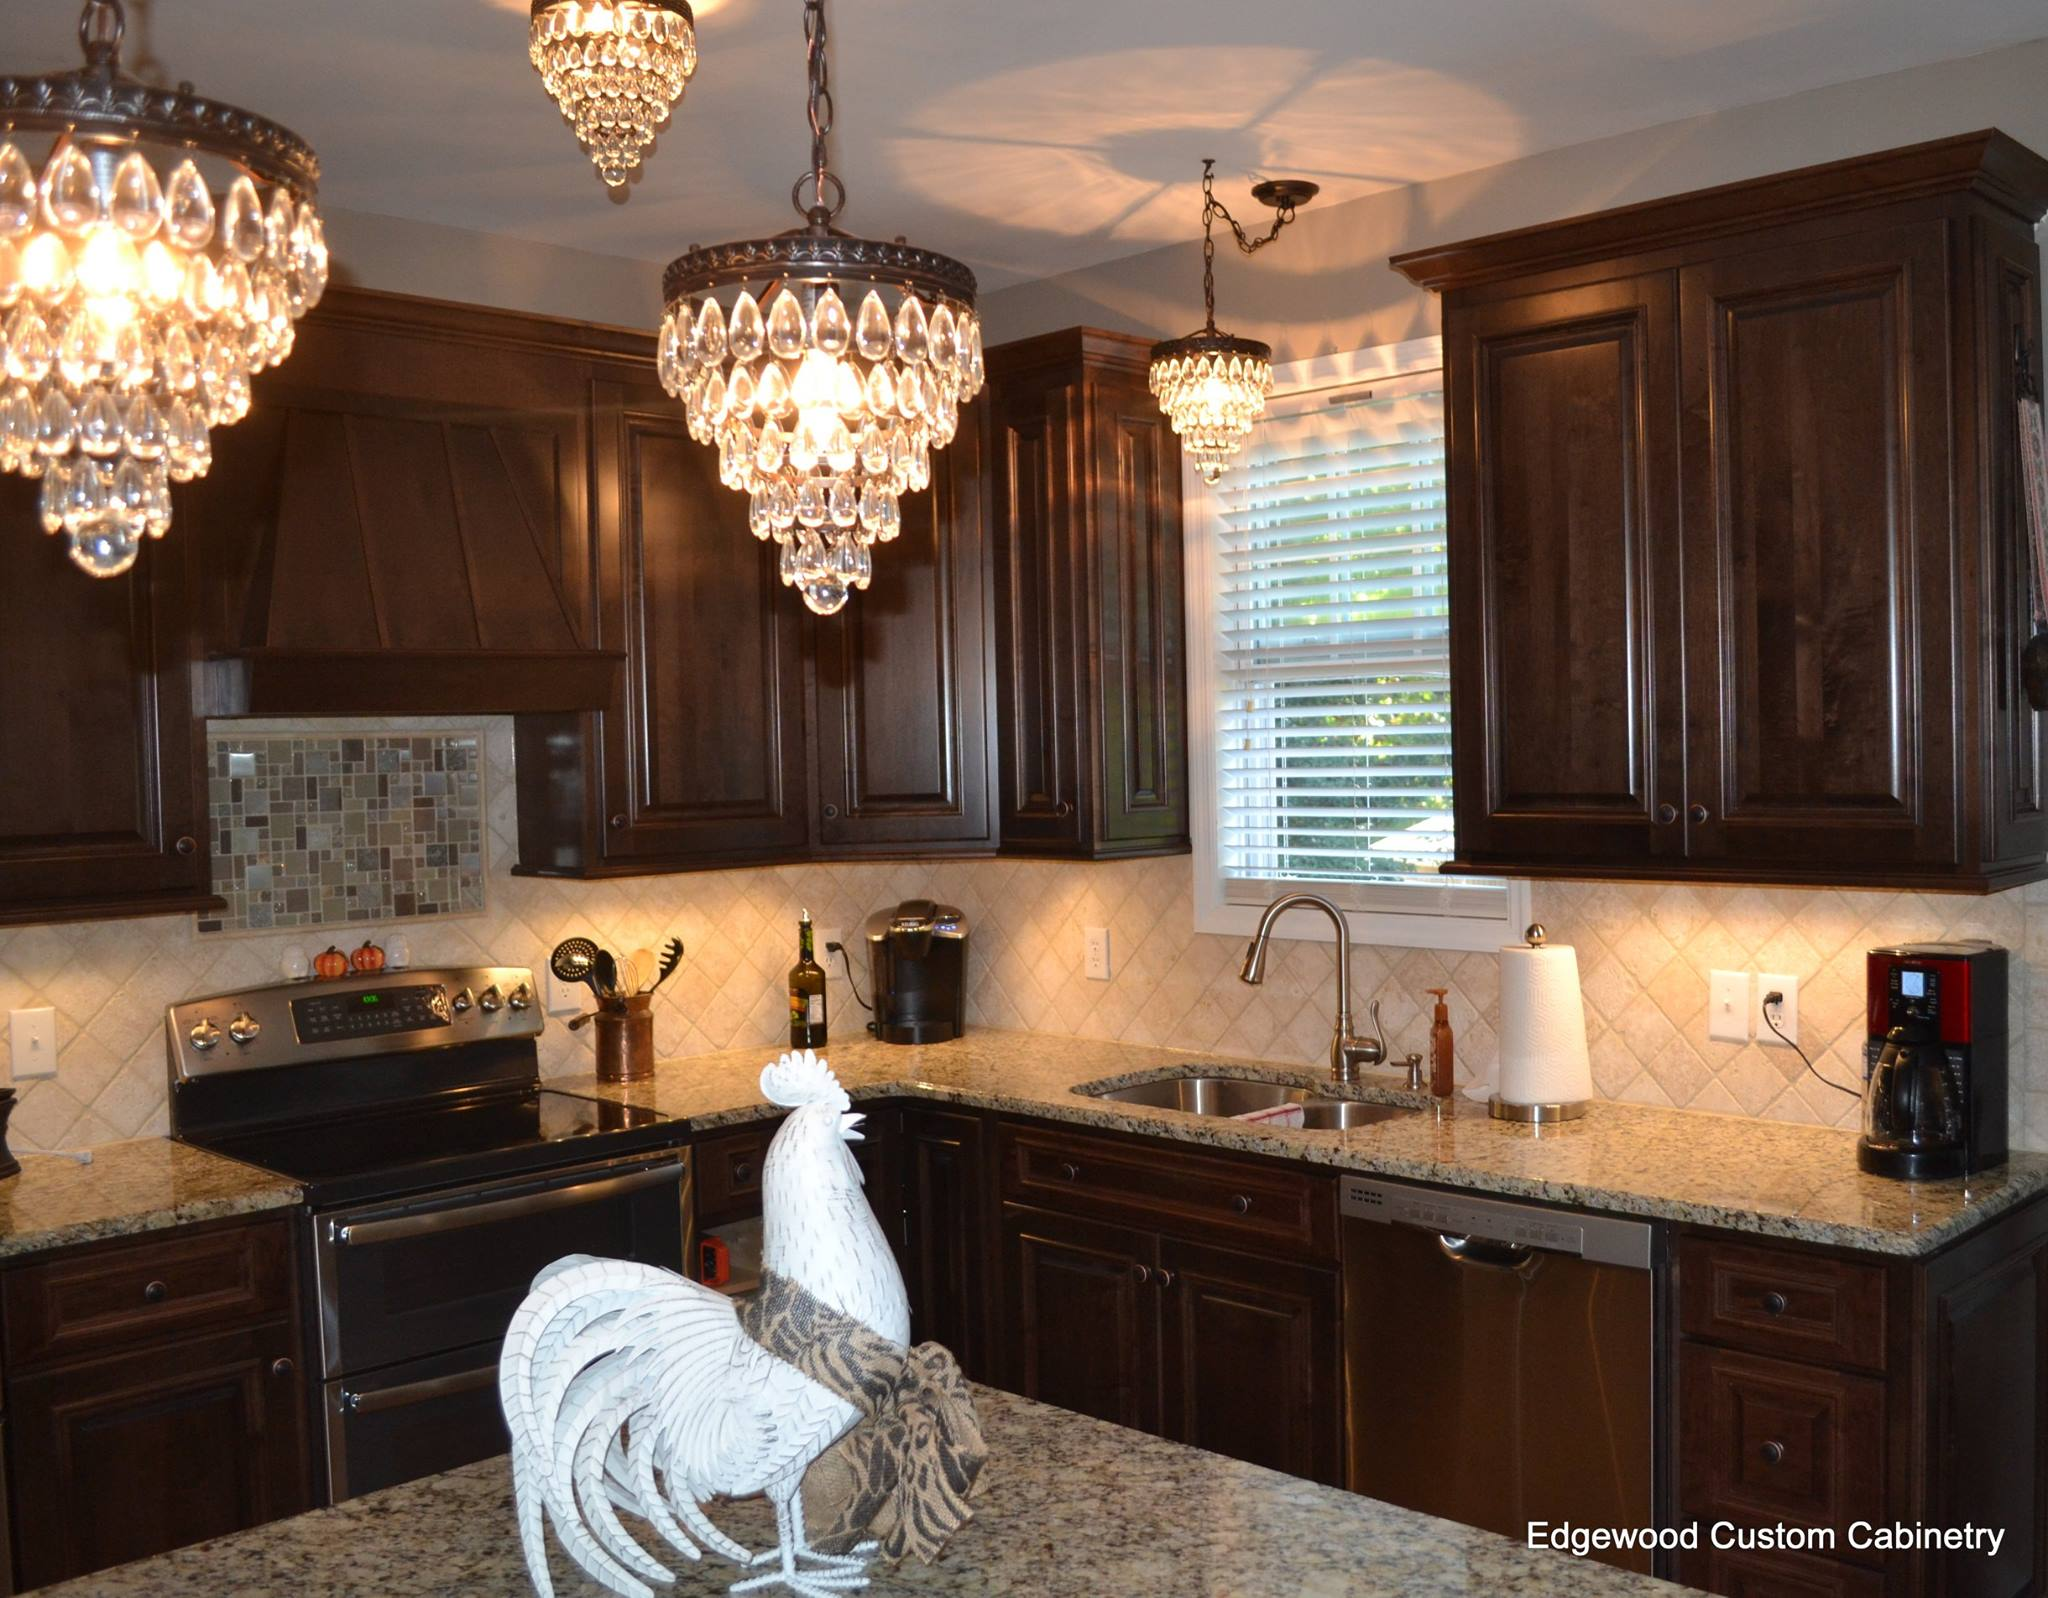 Is a kitchen showroom necessary edgewood cabinetry for Kitchen remodel showroom